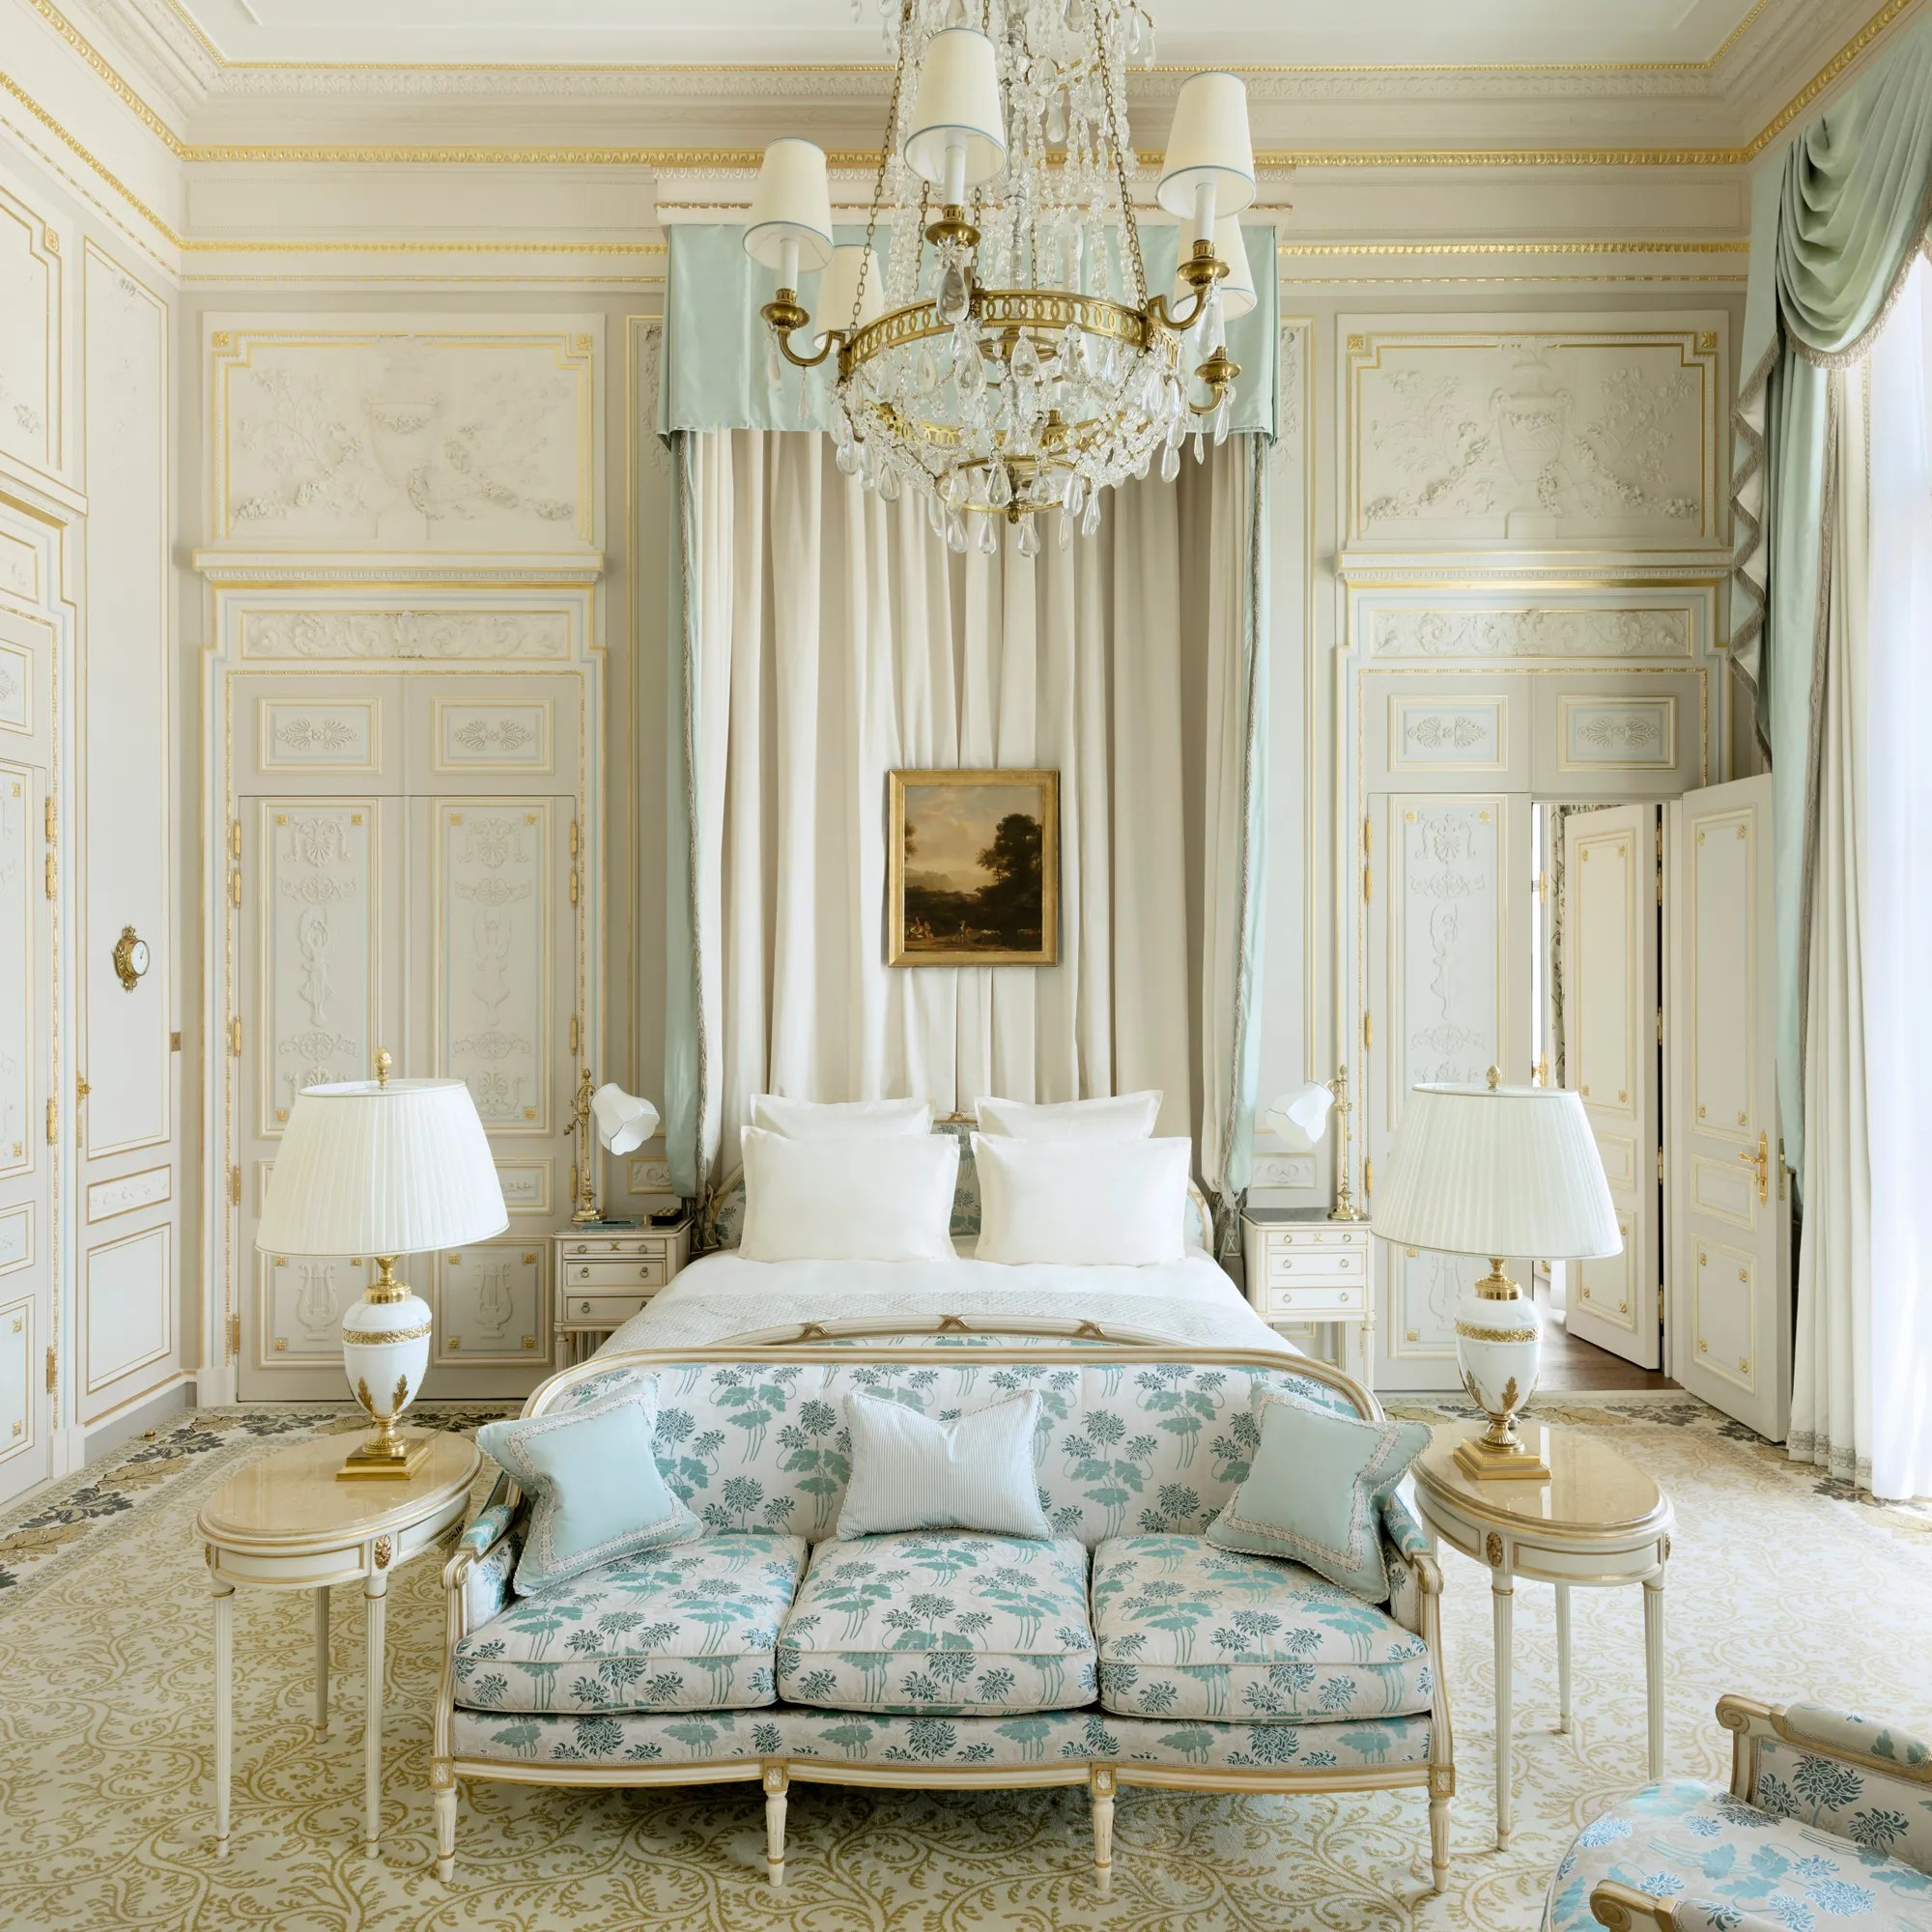 All the inviting rooms with tiled floors and shabby chic interiors are. 9 Grand European Mansions Where You Can Spend The Night Vogue